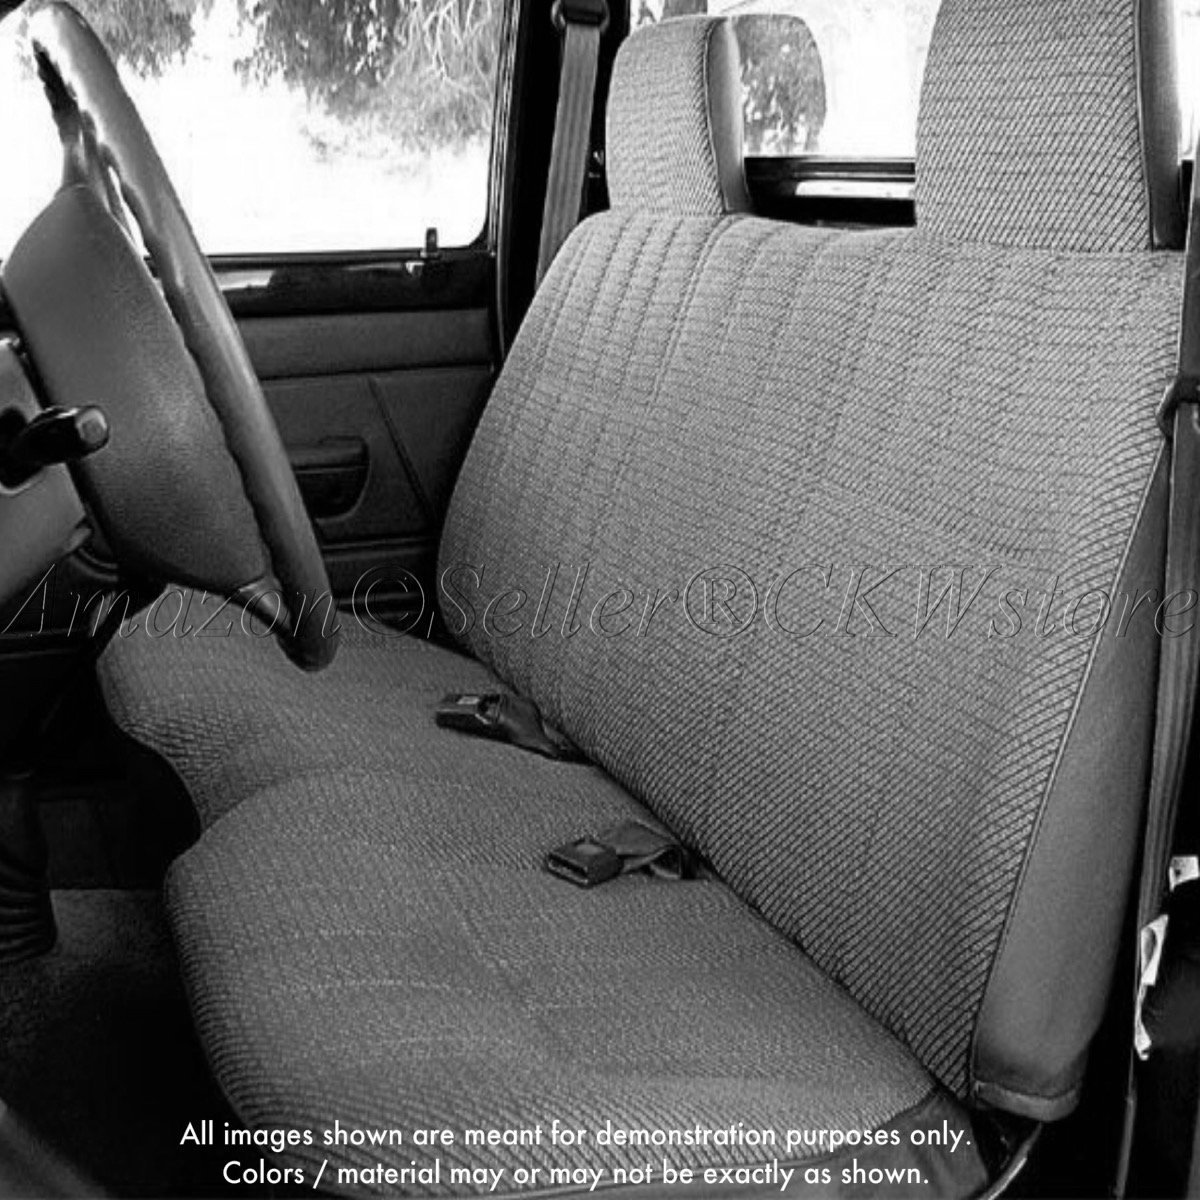 Super Realseatcovers For 1995 2000 Toyota Tacoma Front Solid Bench Gray Seat Cover Triple Stitched 12Mm Thick Padding Molded Headrest Seat Belt Cutout Machost Co Dining Chair Design Ideas Machostcouk